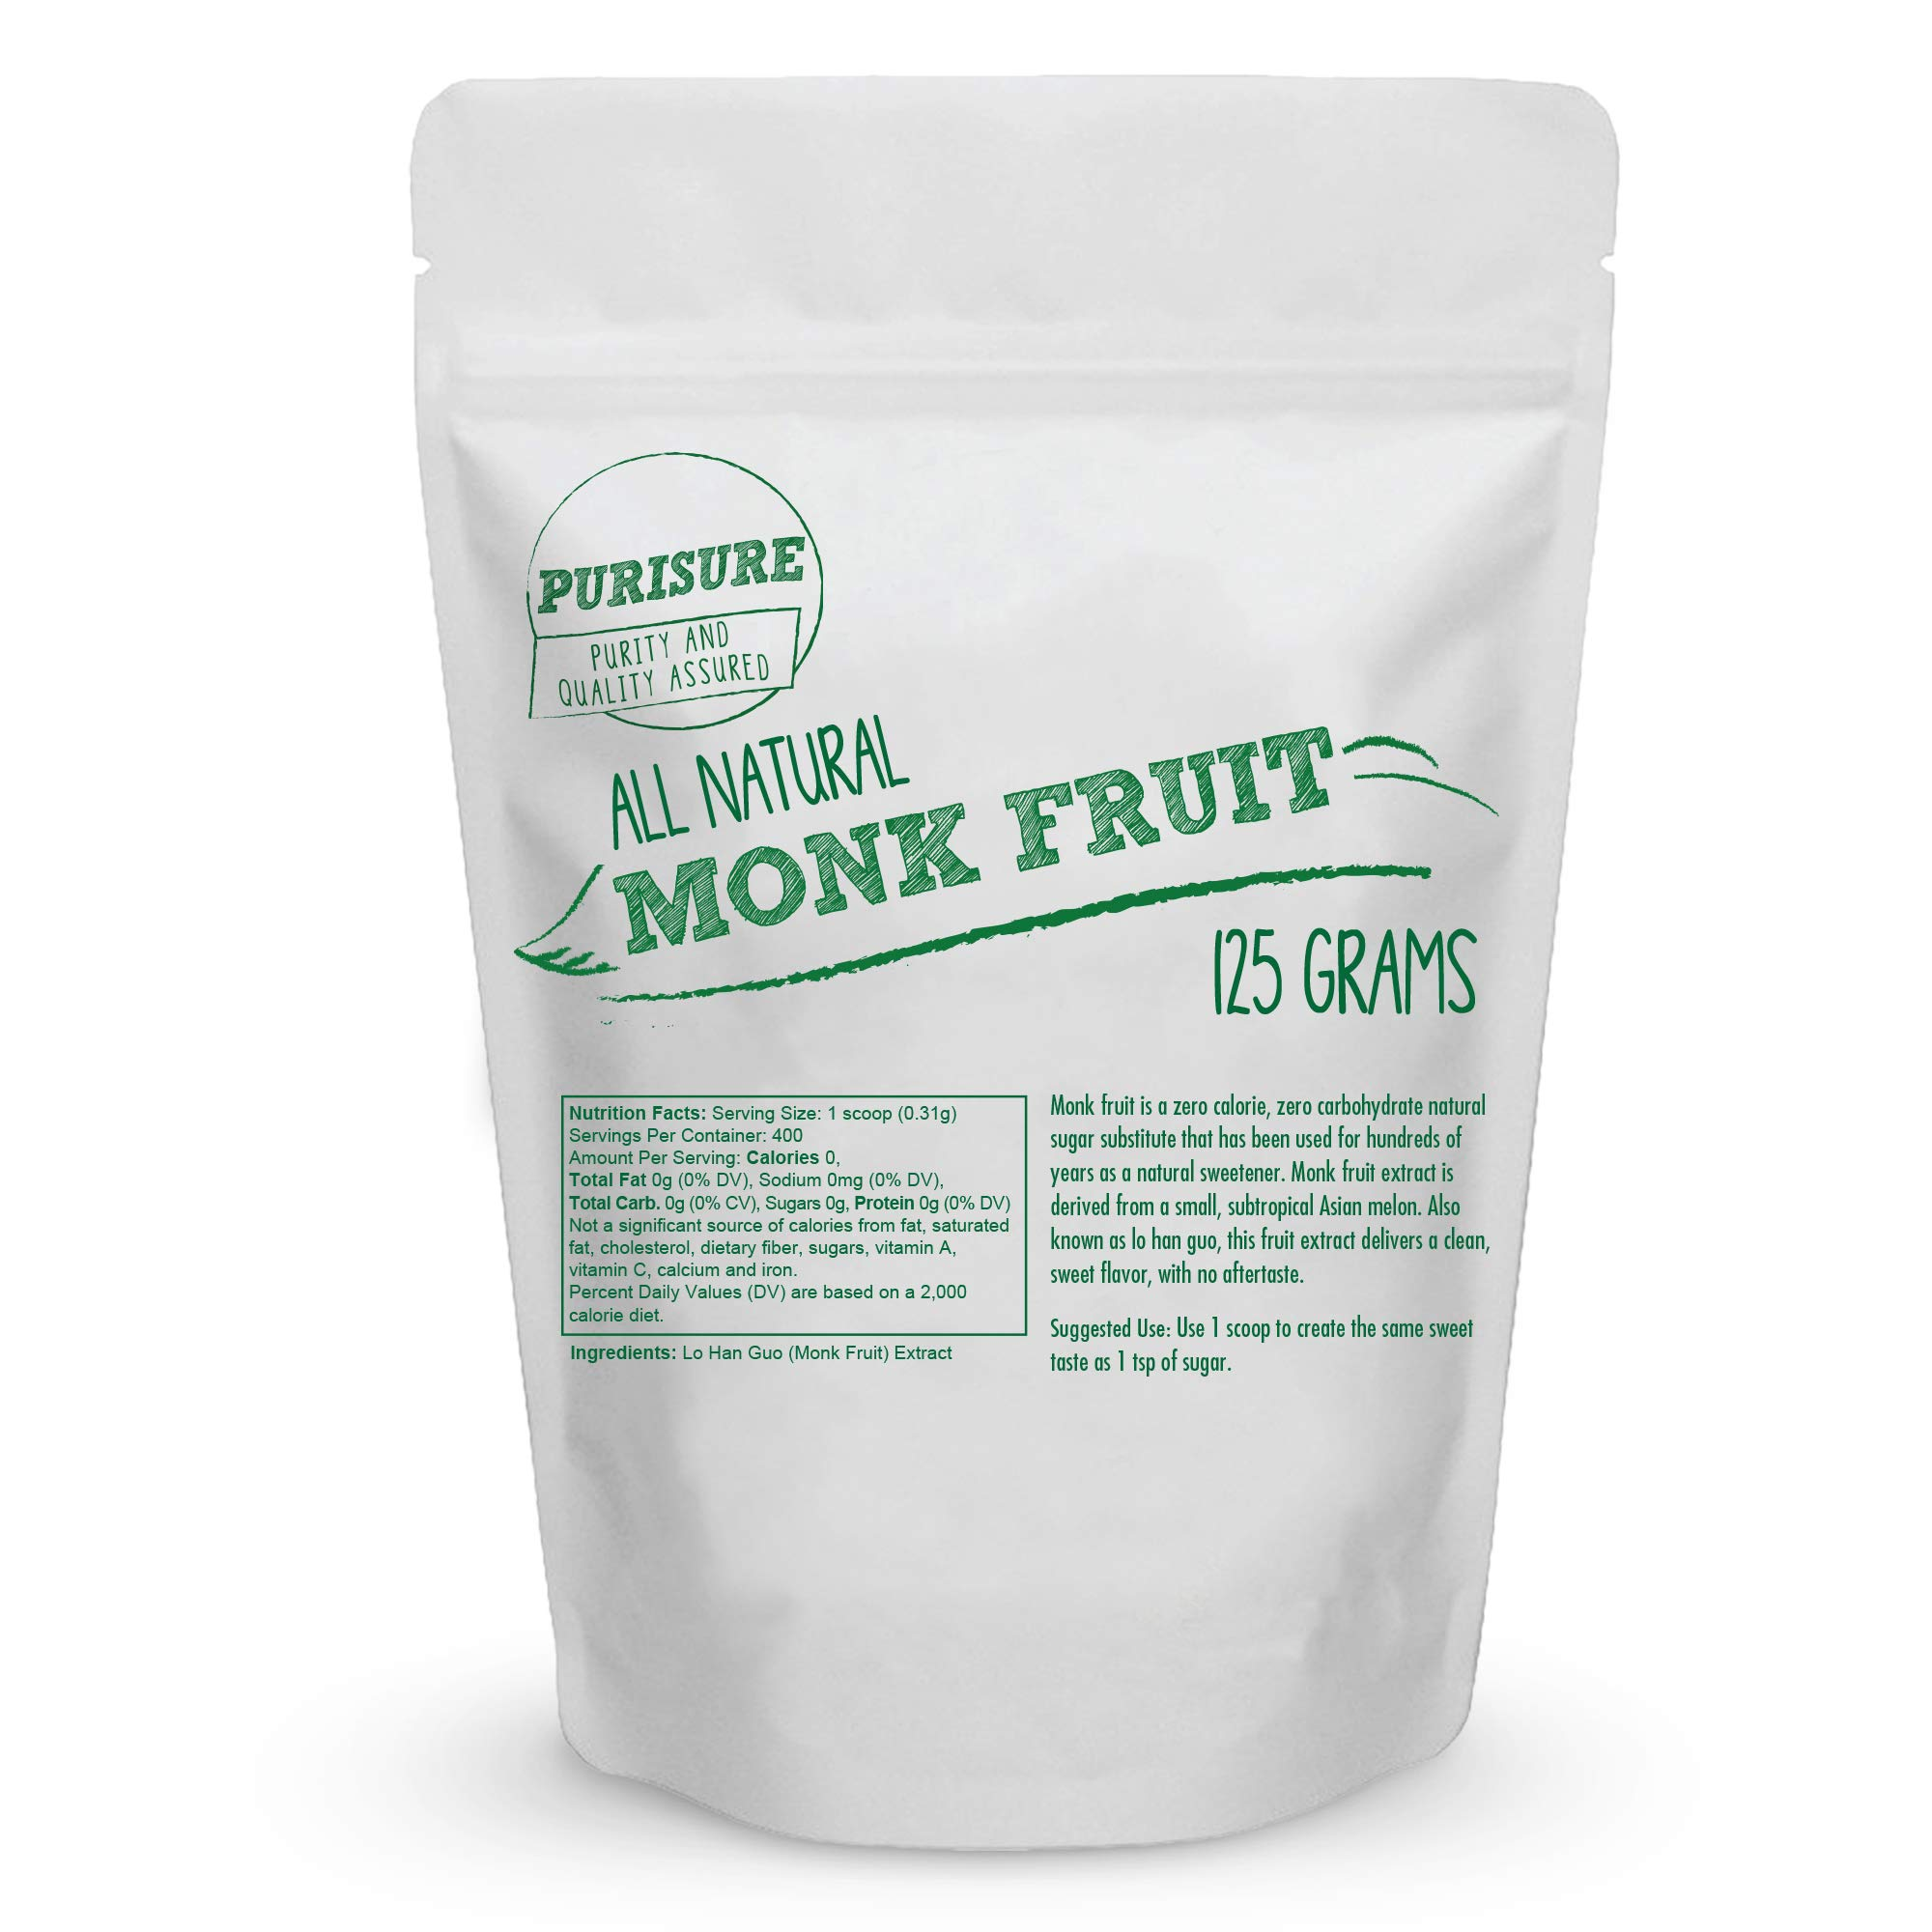 Purisure Monk Fruit Extract 125g (400 Servings) | Sugar-Free Natural Sweetener | Zero-Calorie Zero-Carb Sugar Substitute | No Artificial Sweeteners | Perfect for Low-Sugar, Low-Carb, Keto, Paleo Diets by Purisure (Image #5)